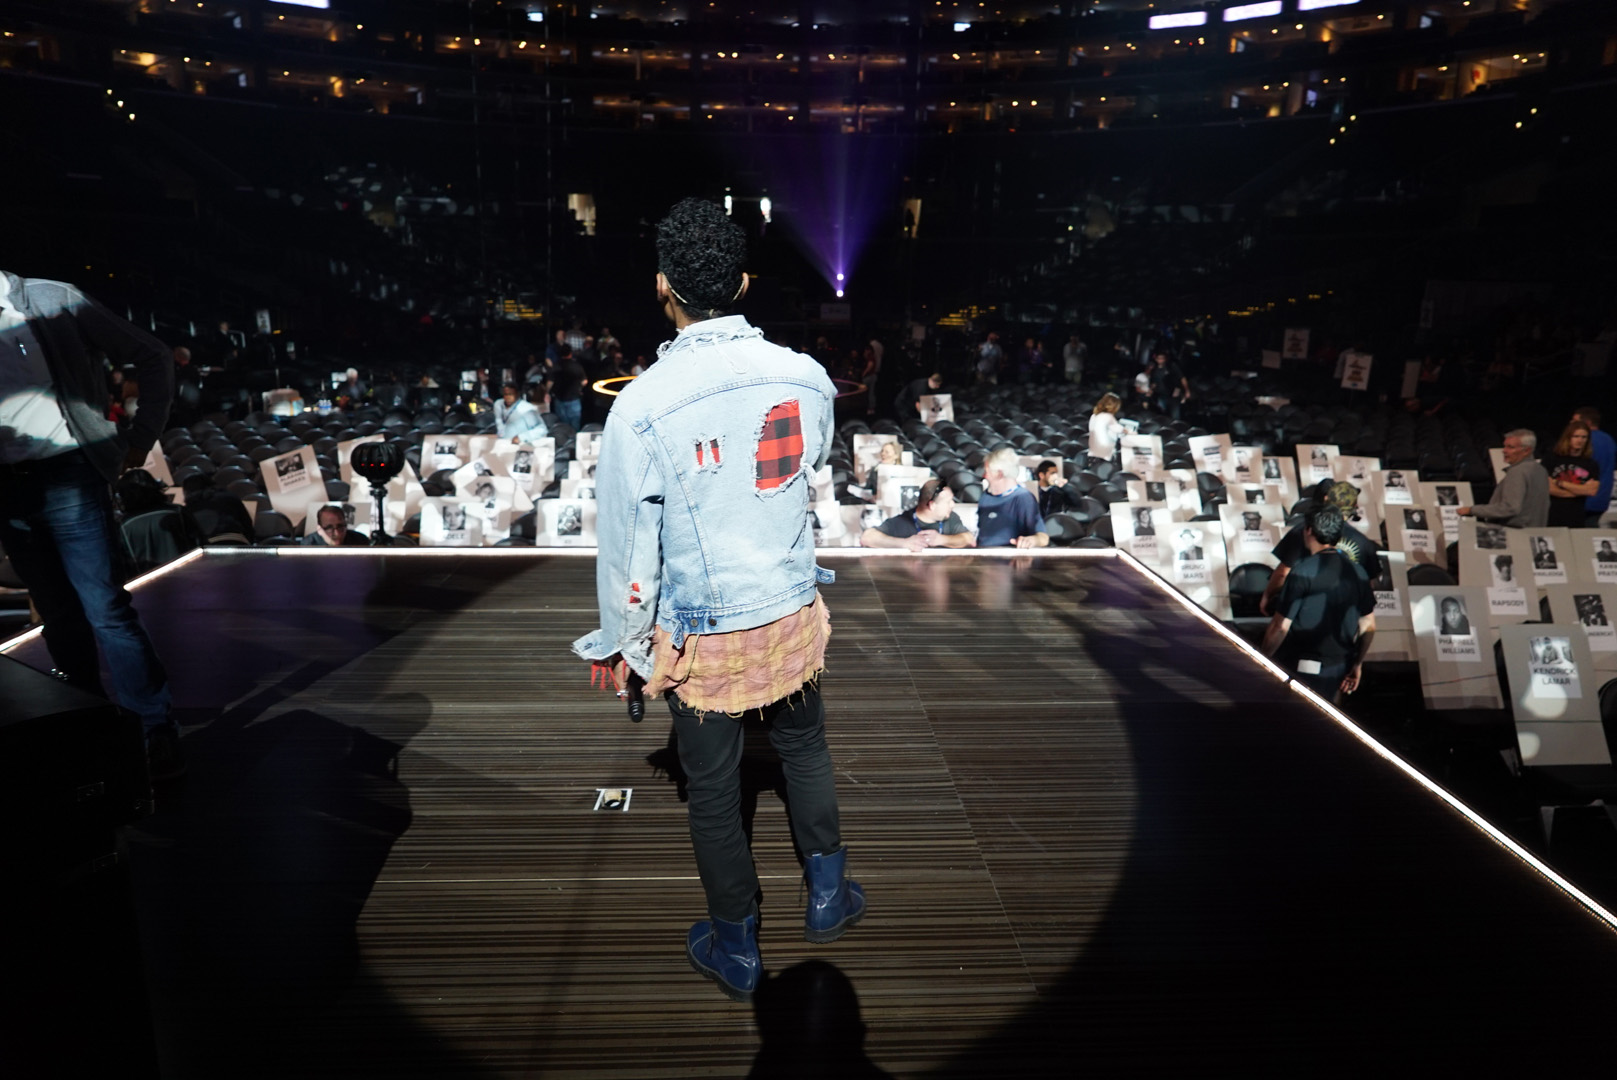 Miguel takes to the stage to run through his 2016 GRAMMY performance.